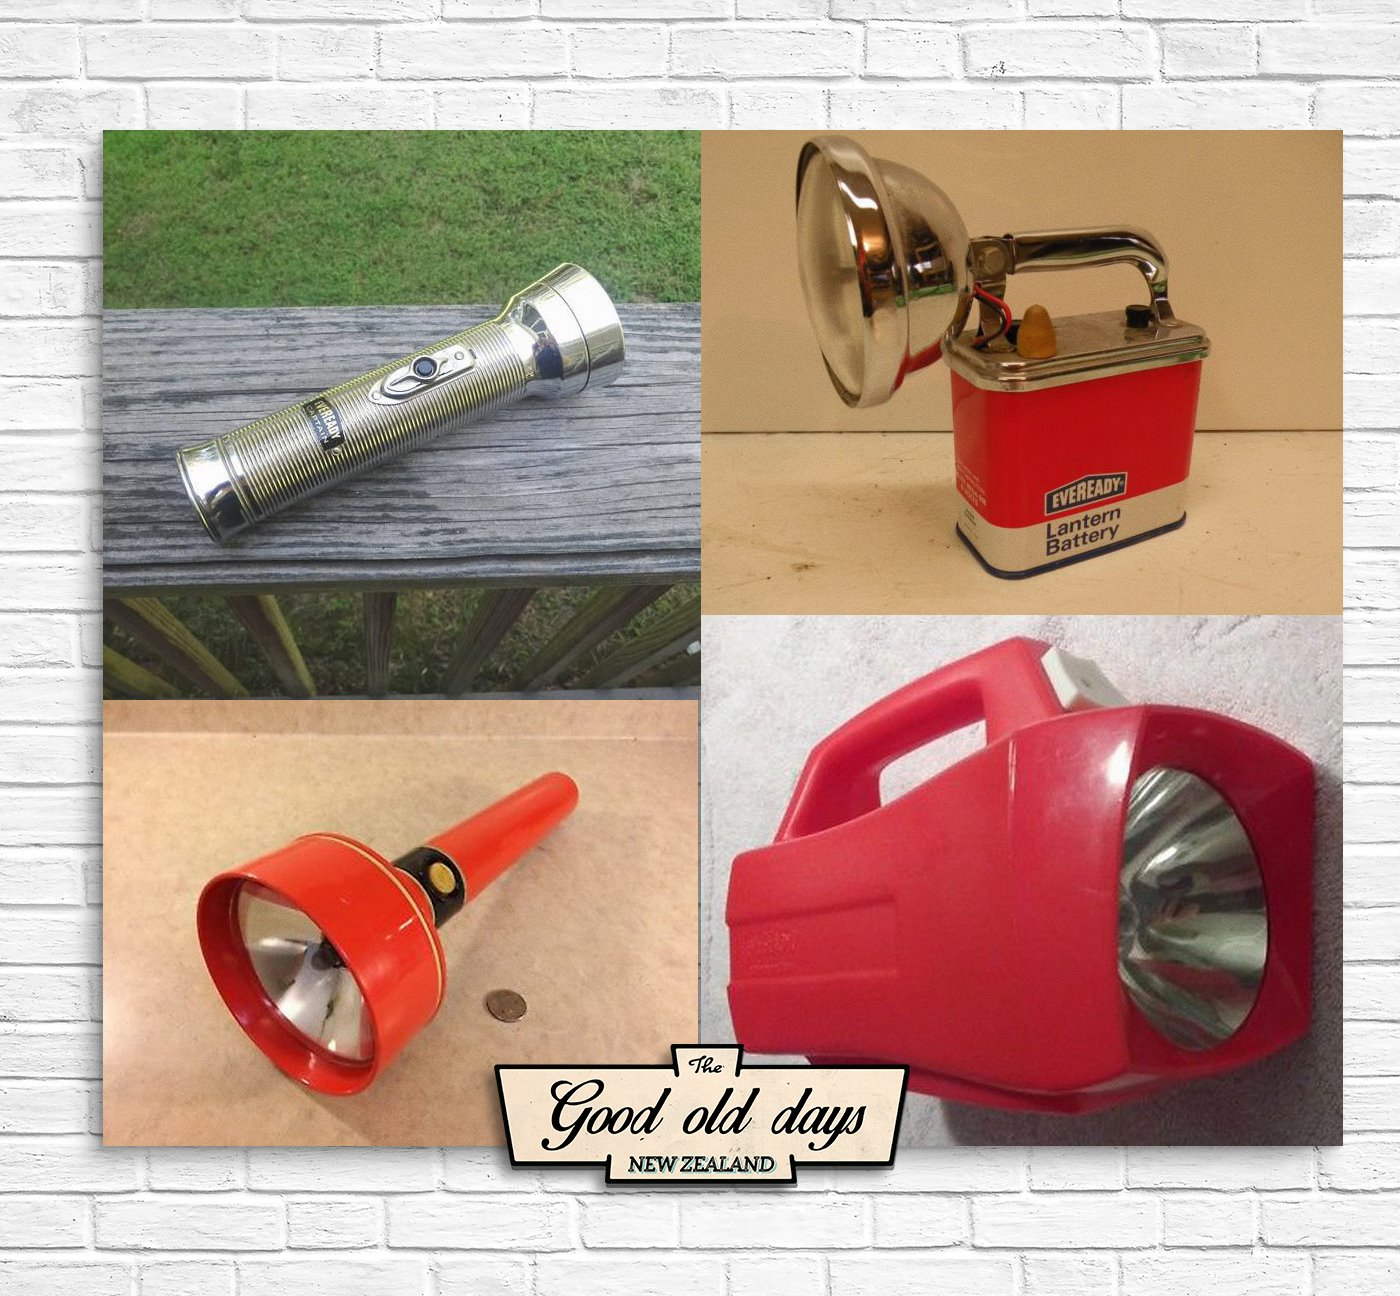 Eveready torches